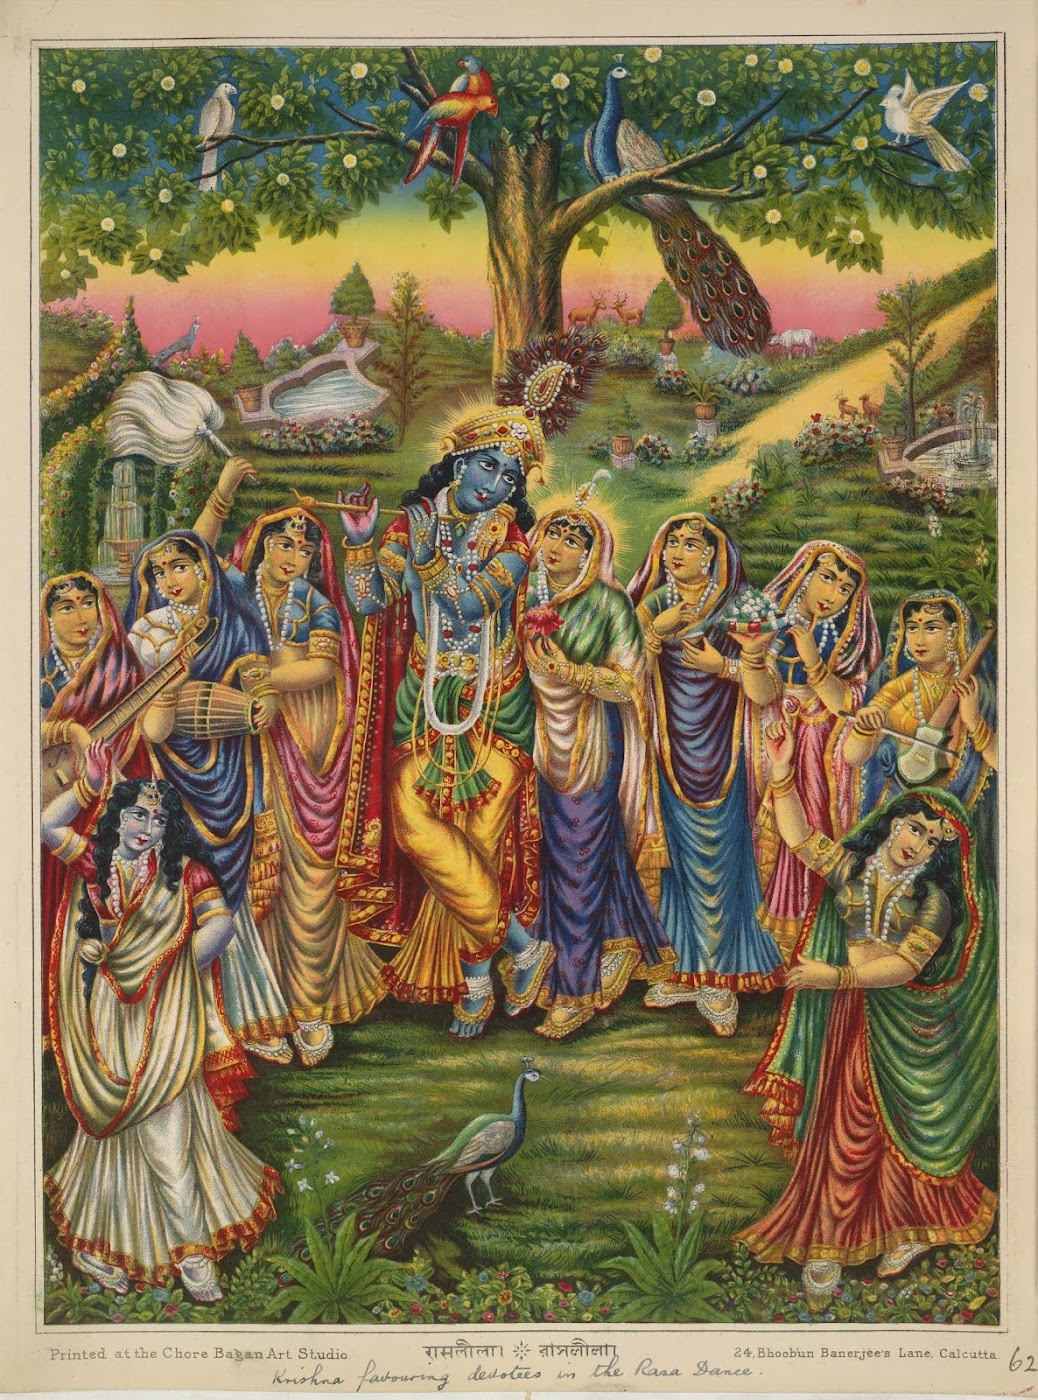 Krishna Dancing With Gopis Under the Kadamba Tree (Rasa lila)  - Lithograph Print, Chore Bagan Art Studio, Calcutta (Kolkata) Circa 1895